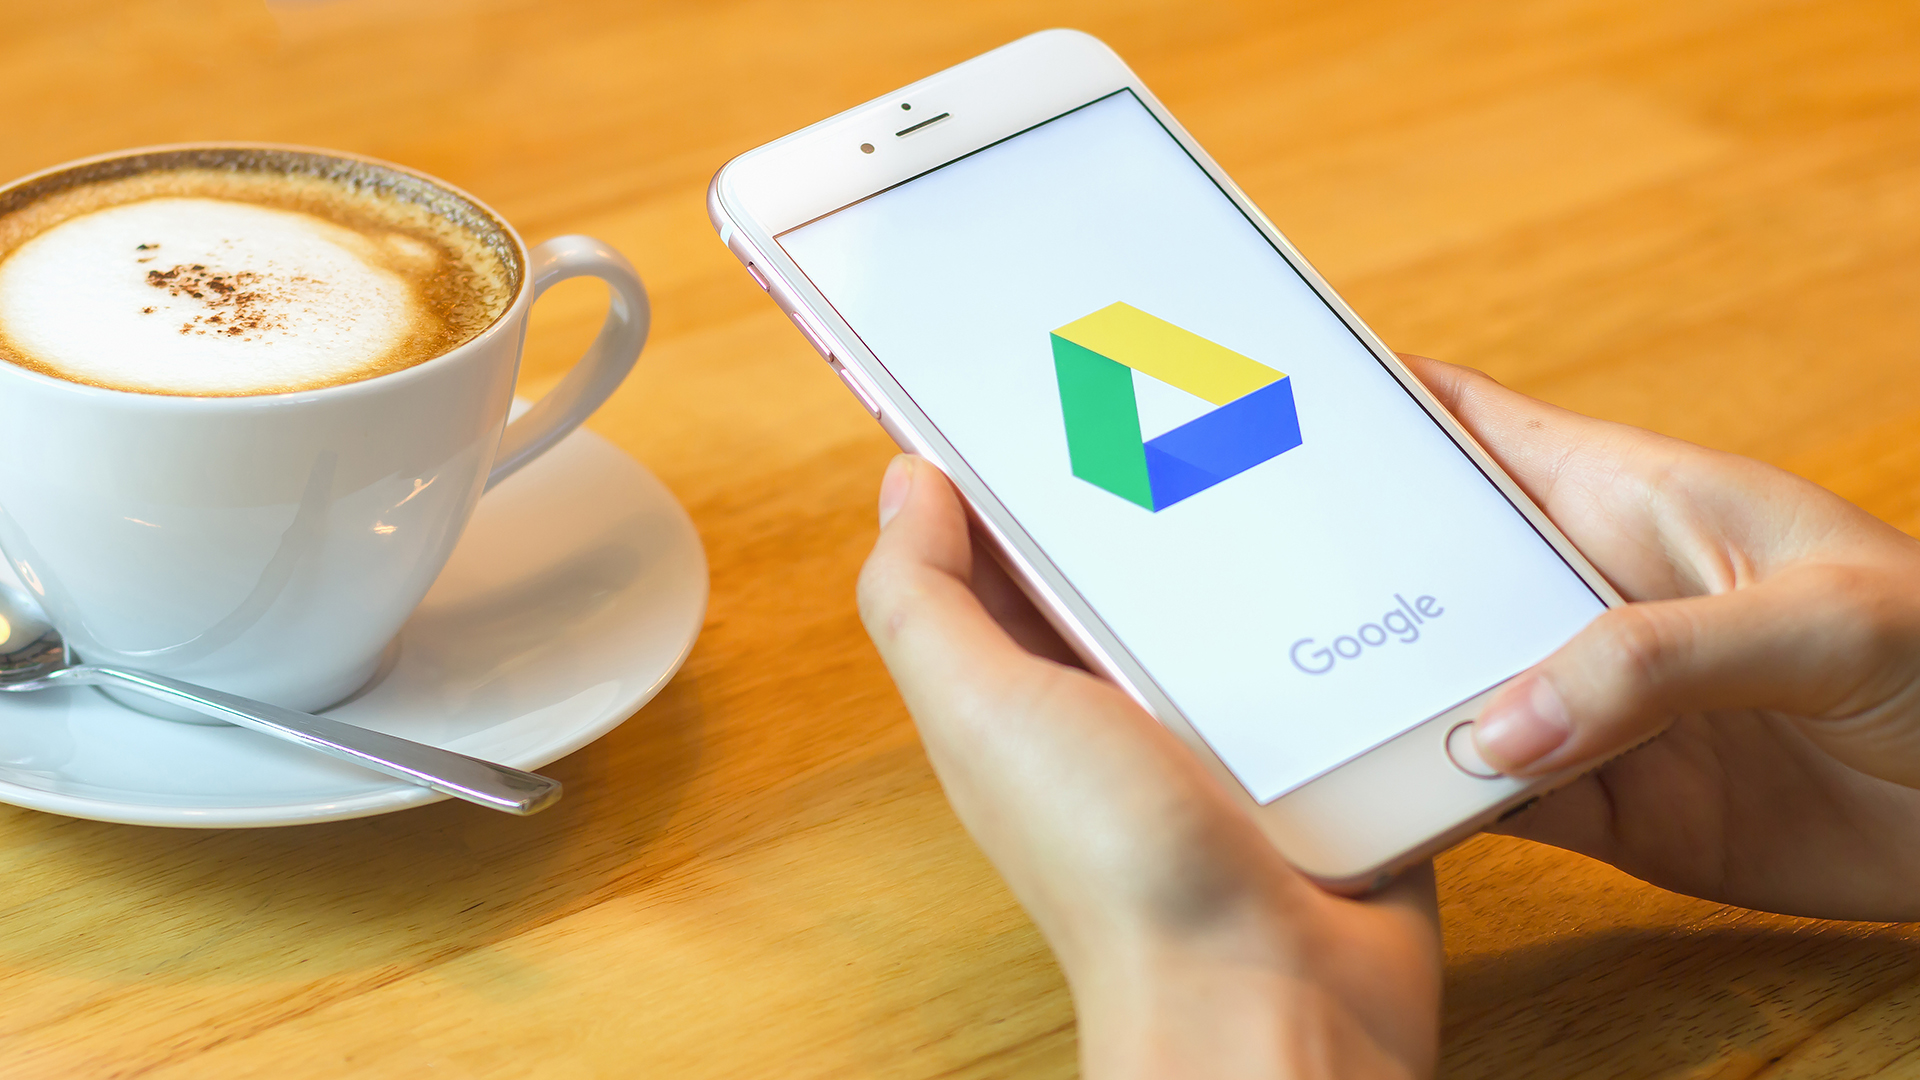 7 Stocks You Can Invest in That Are Like Companies Google Parent Alphabet Owns